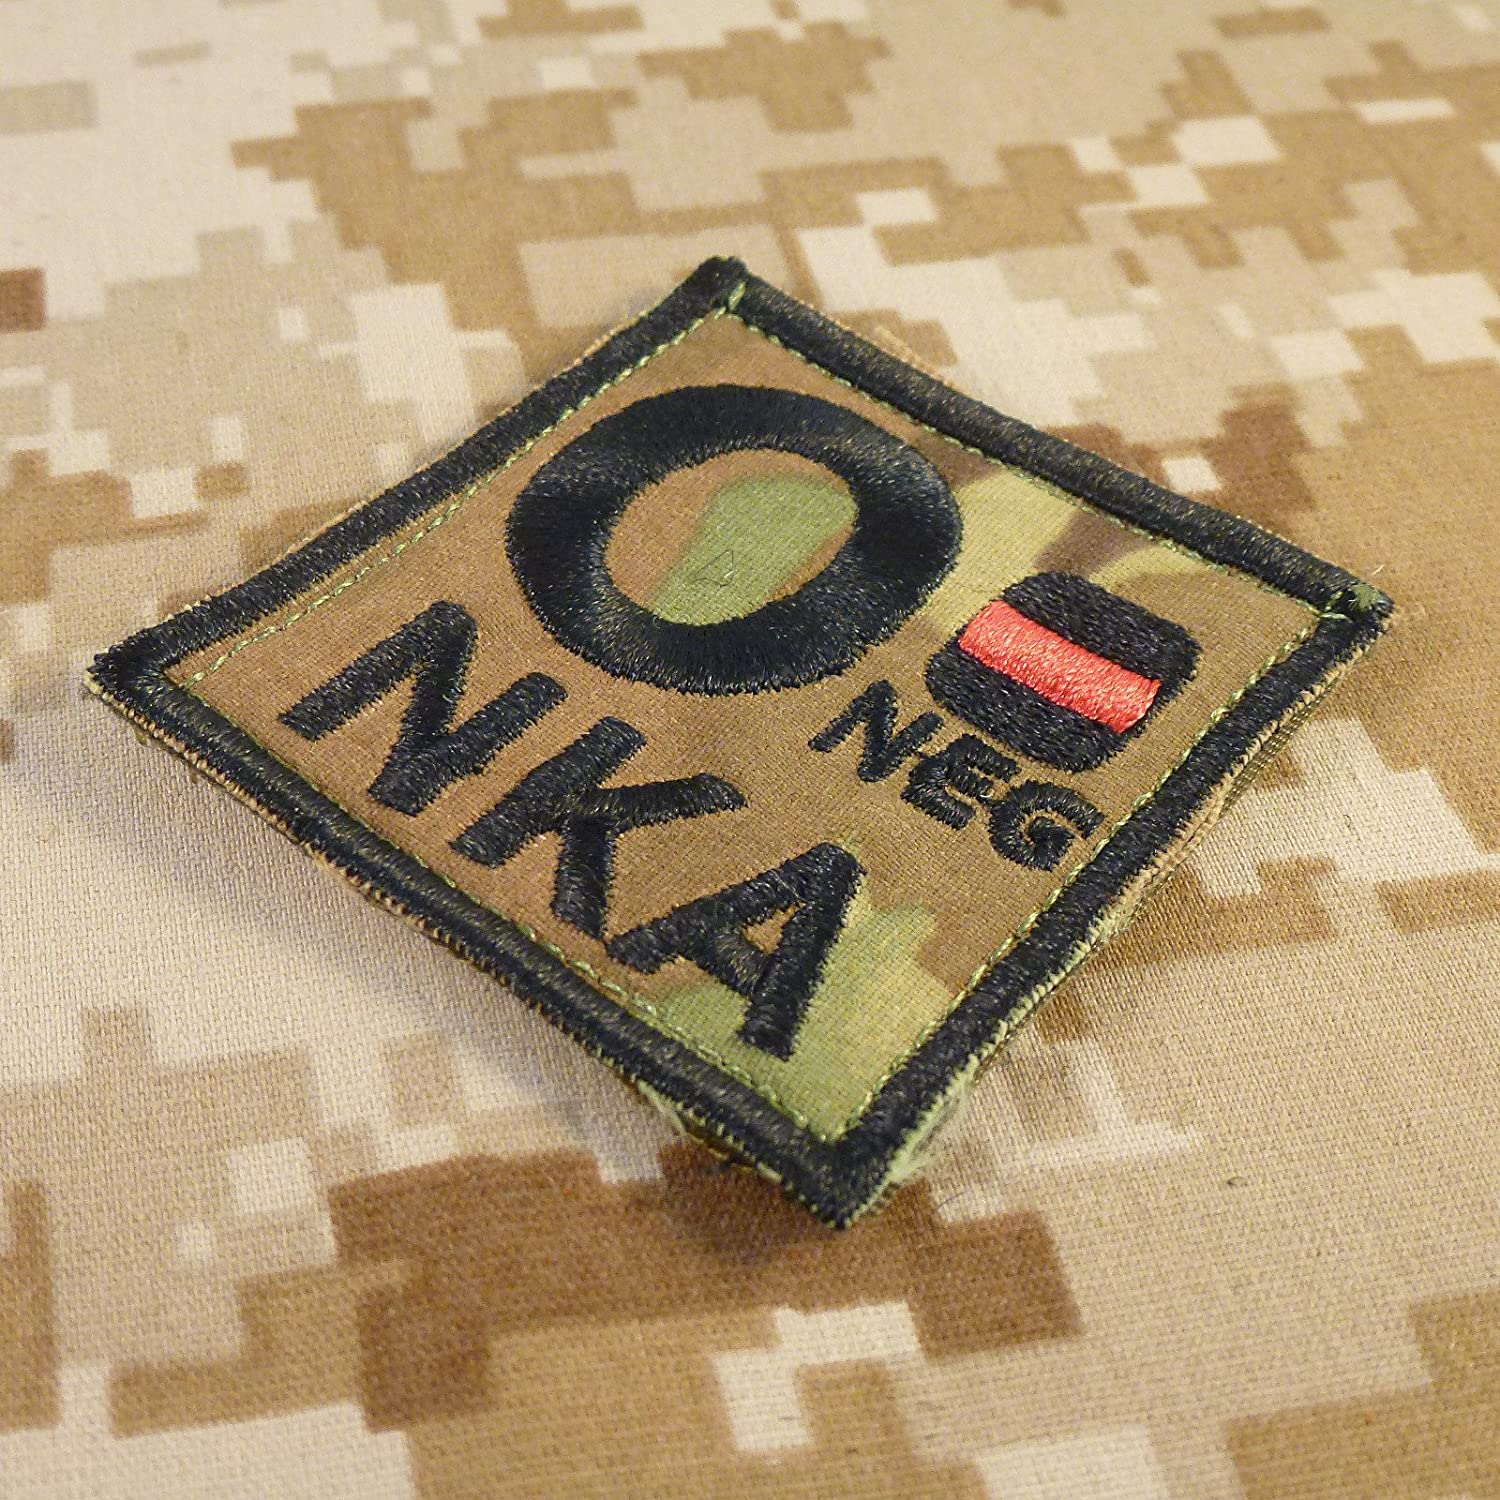 NKA Blood Type Embroidered Hook-and-Loop Patch Multicam O NEG O